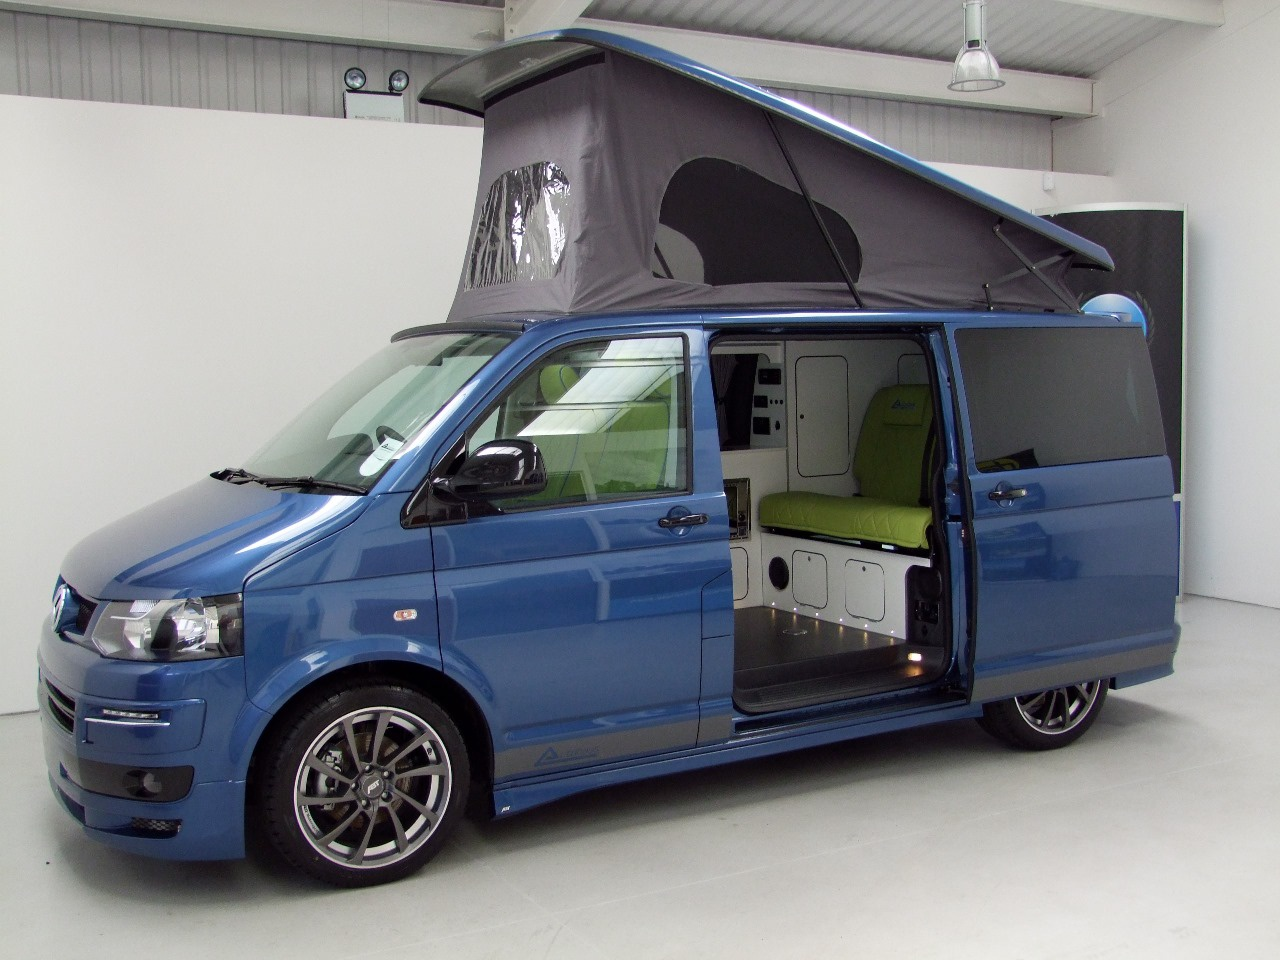 vw t5 camper autohaus ashton with full abt body kit unregistered nick whale motorhomes. Black Bedroom Furniture Sets. Home Design Ideas